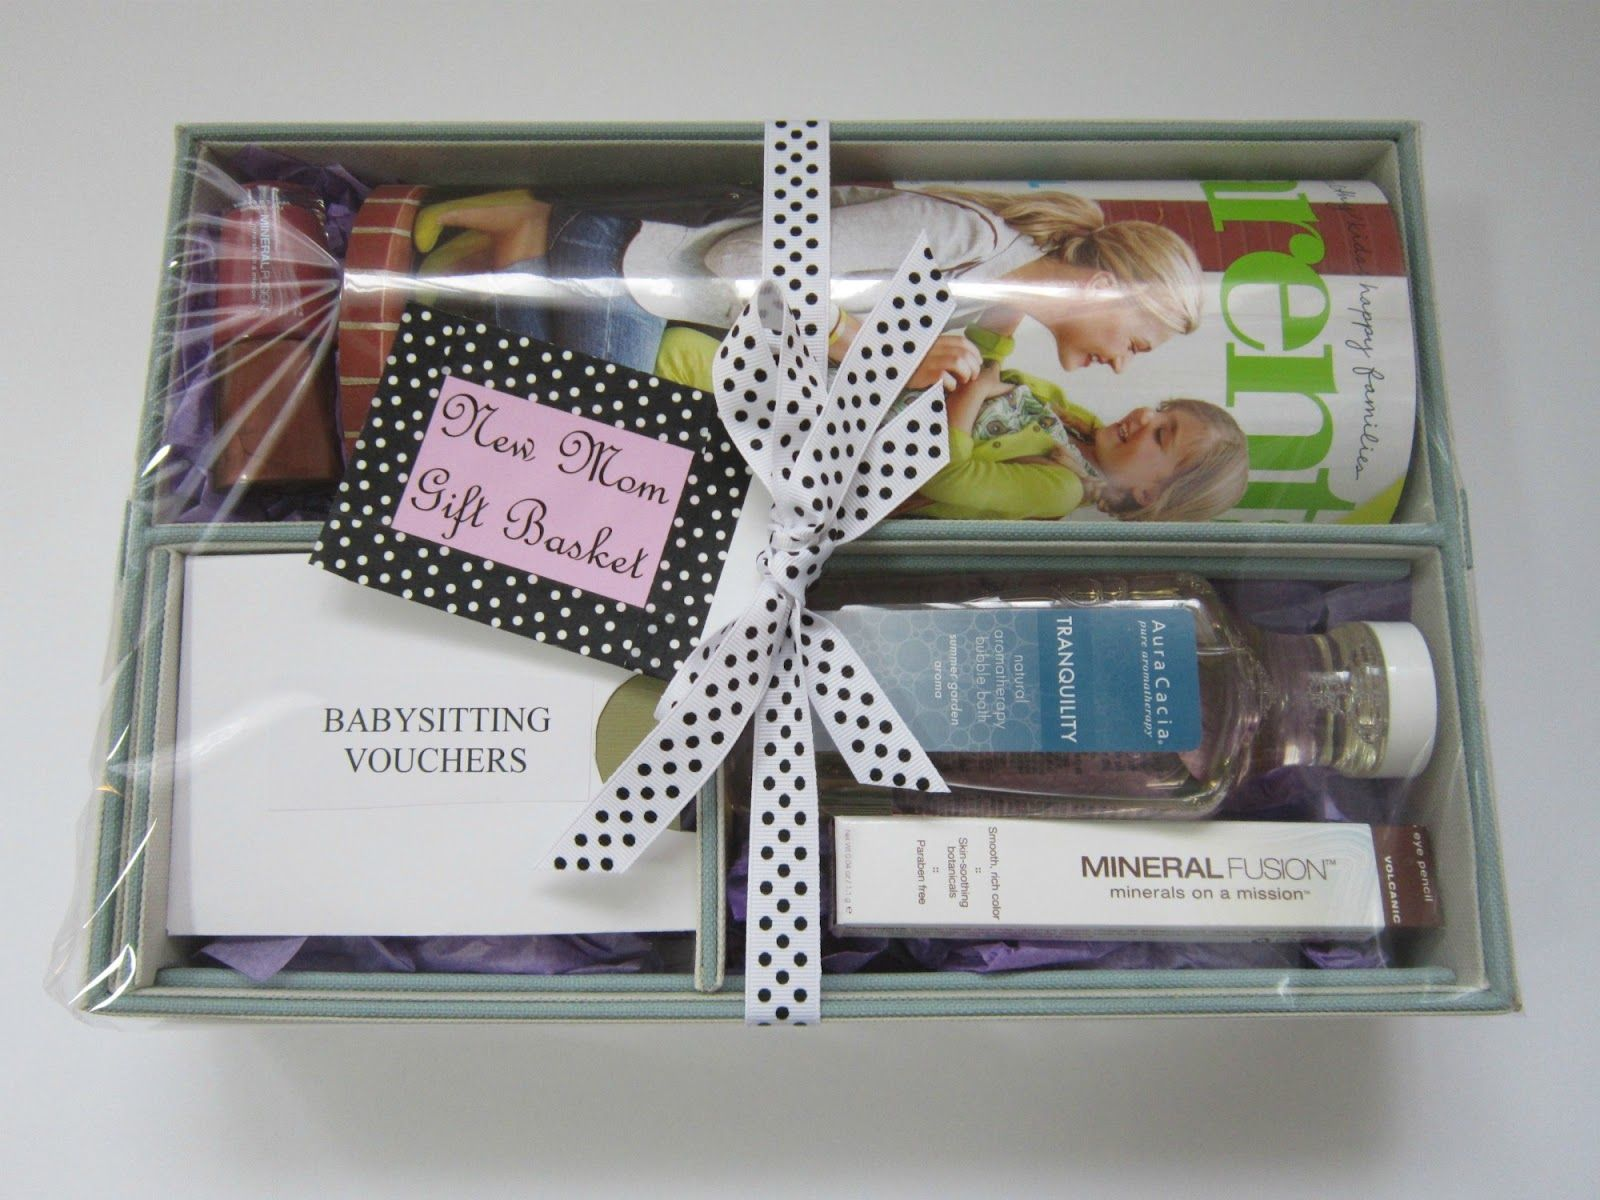 Design Megillah: New Mom Gift Basket,  Go To www.likegossip.com to get more Gossip News!